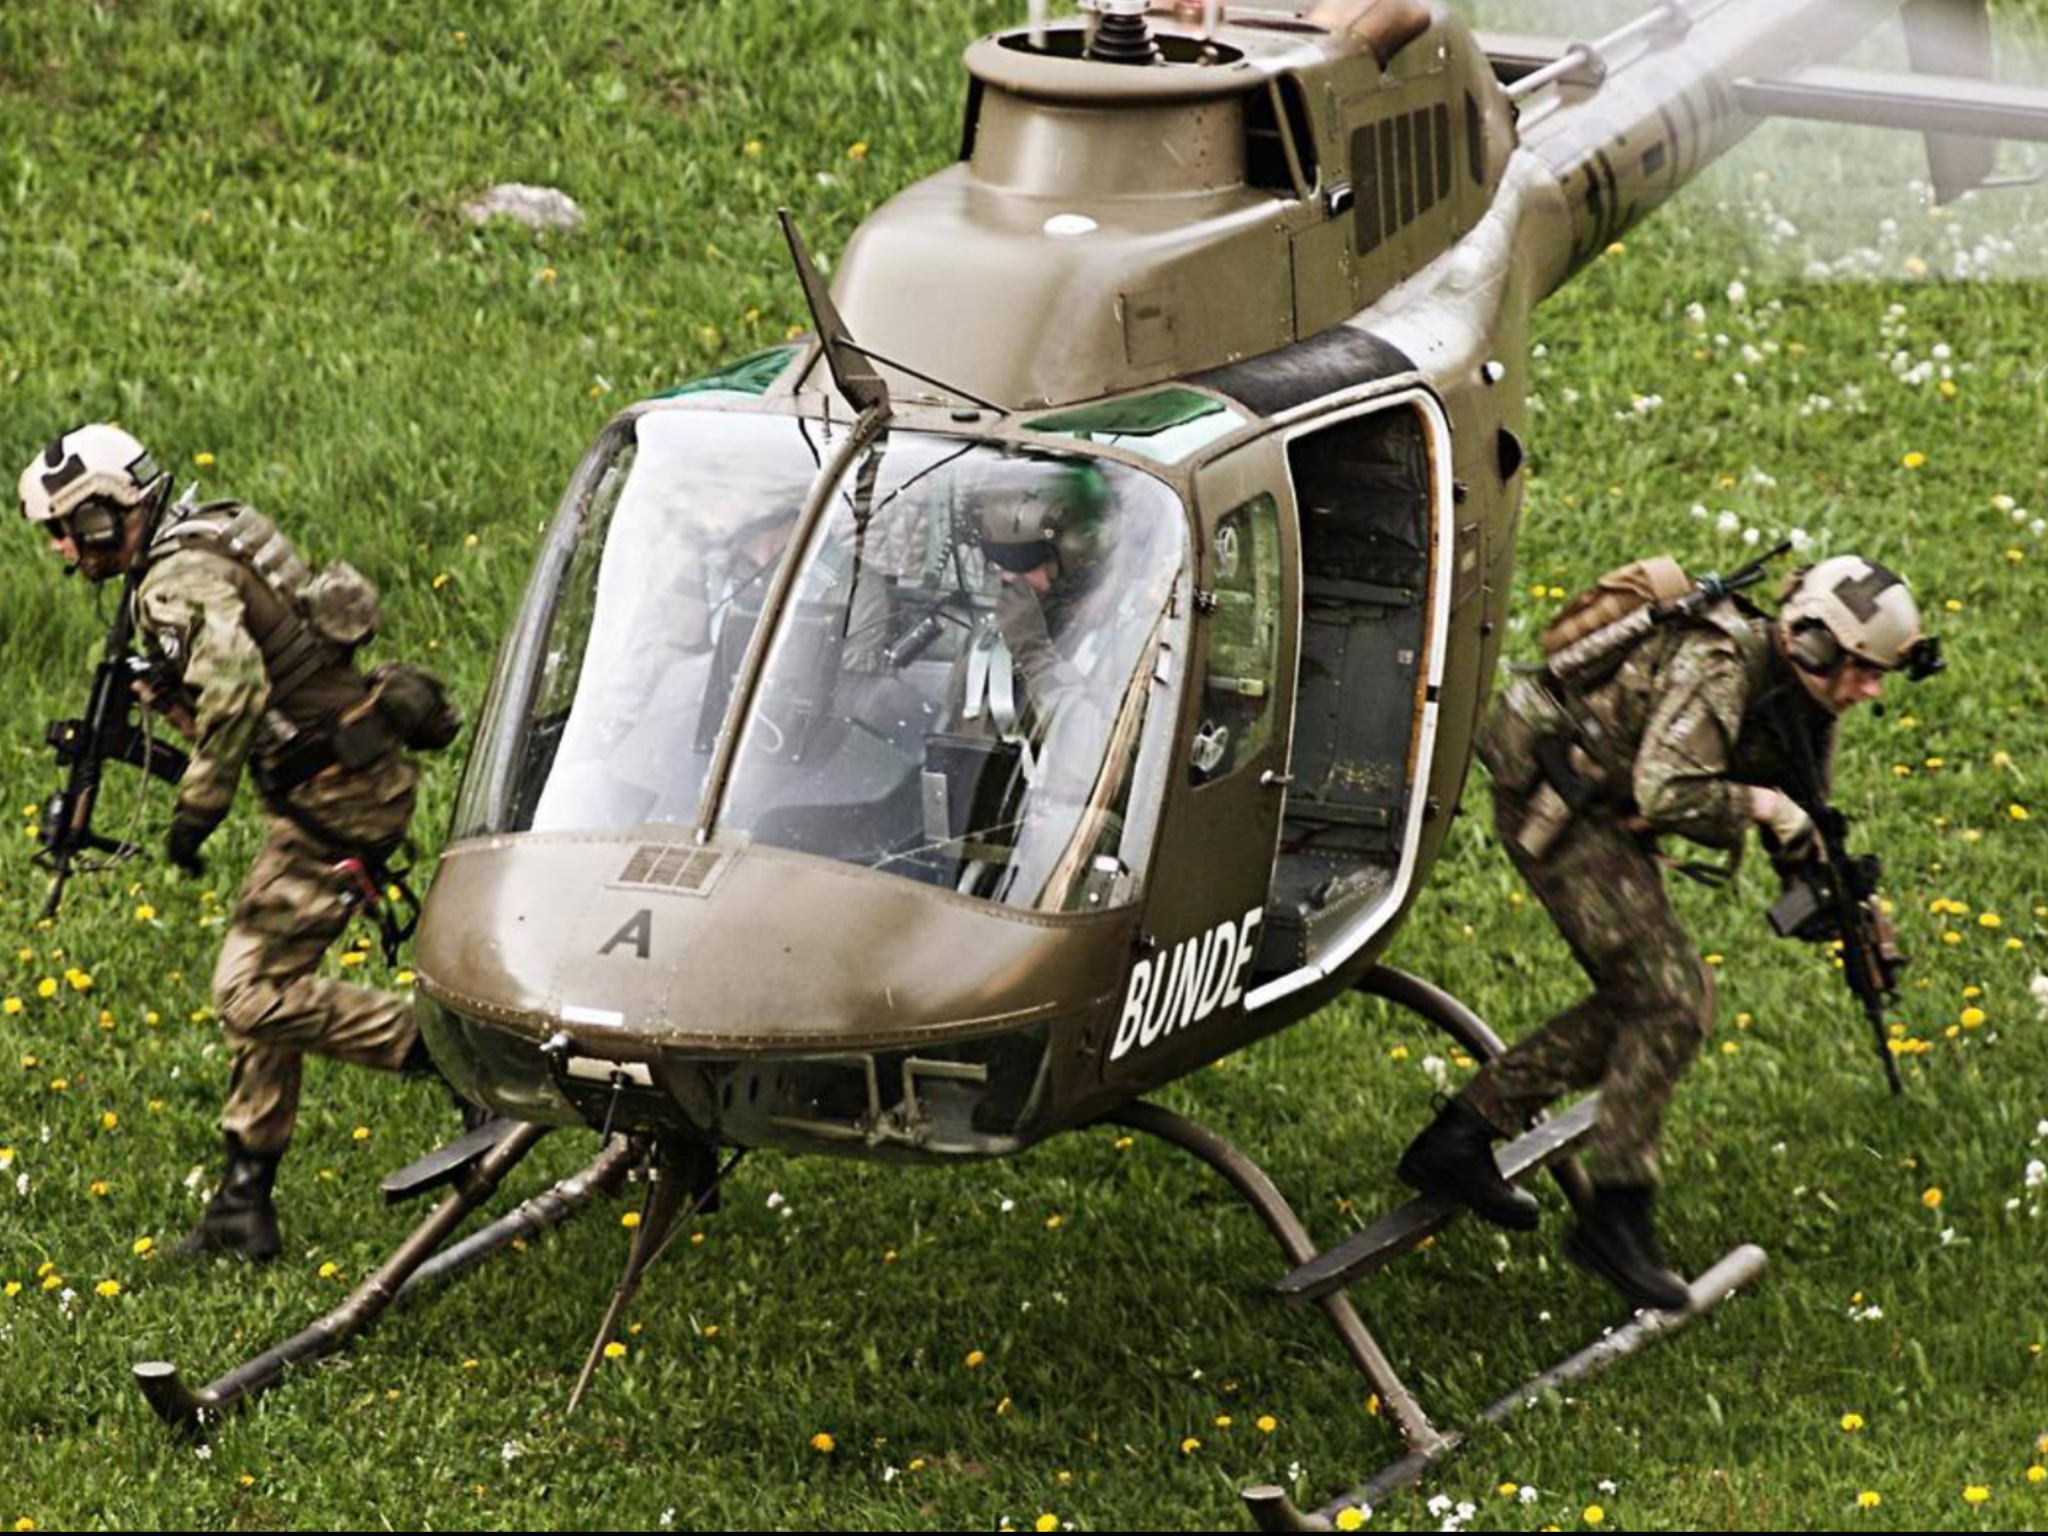 Austrian Jagdkommando and Slovak special forces conducting a joint training operation. May, 2015